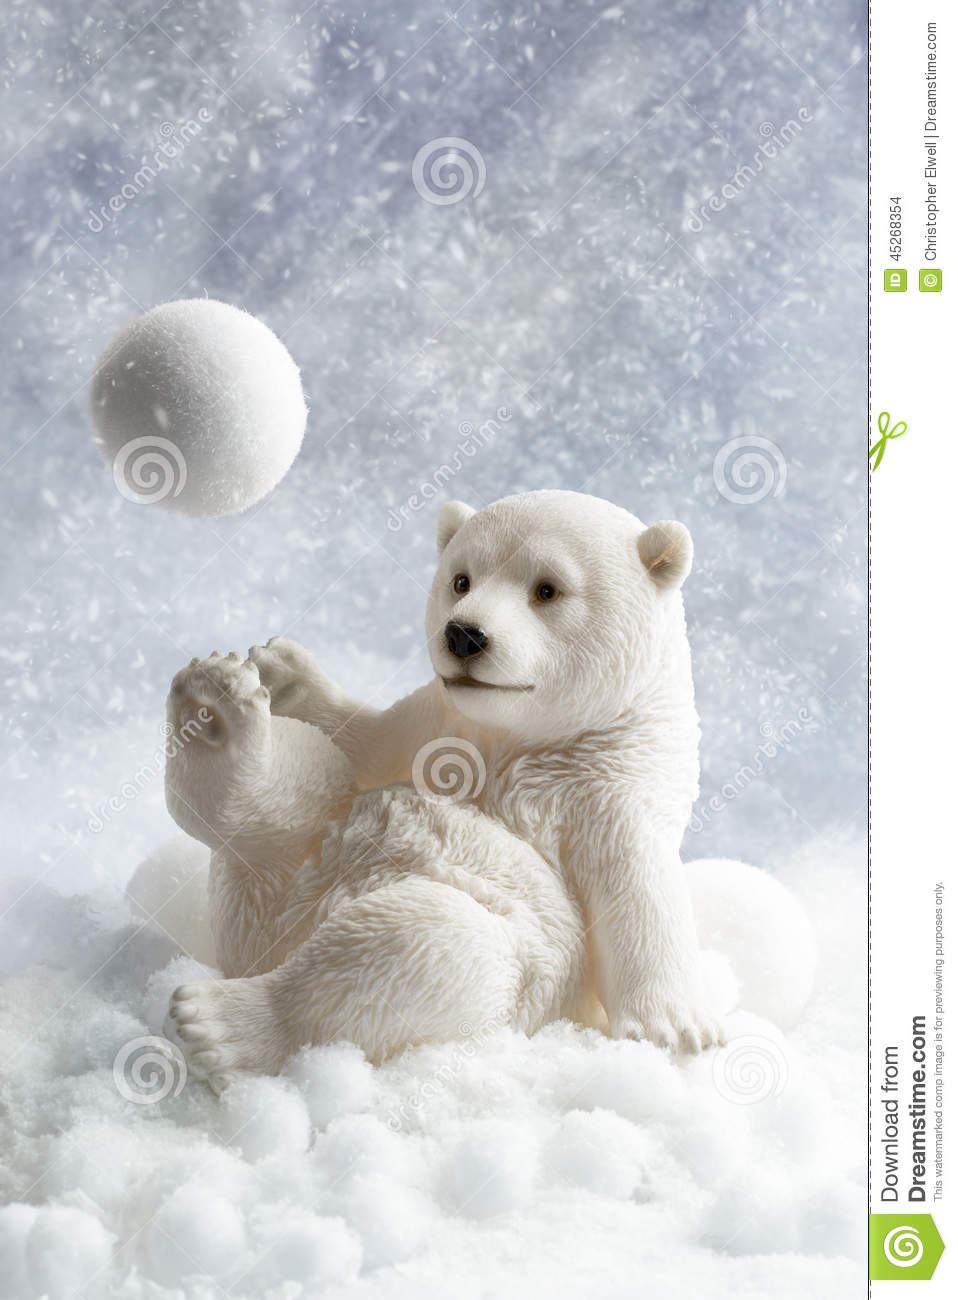 polar bear decoration stock photo image of ornament. Black Bedroom Furniture Sets. Home Design Ideas